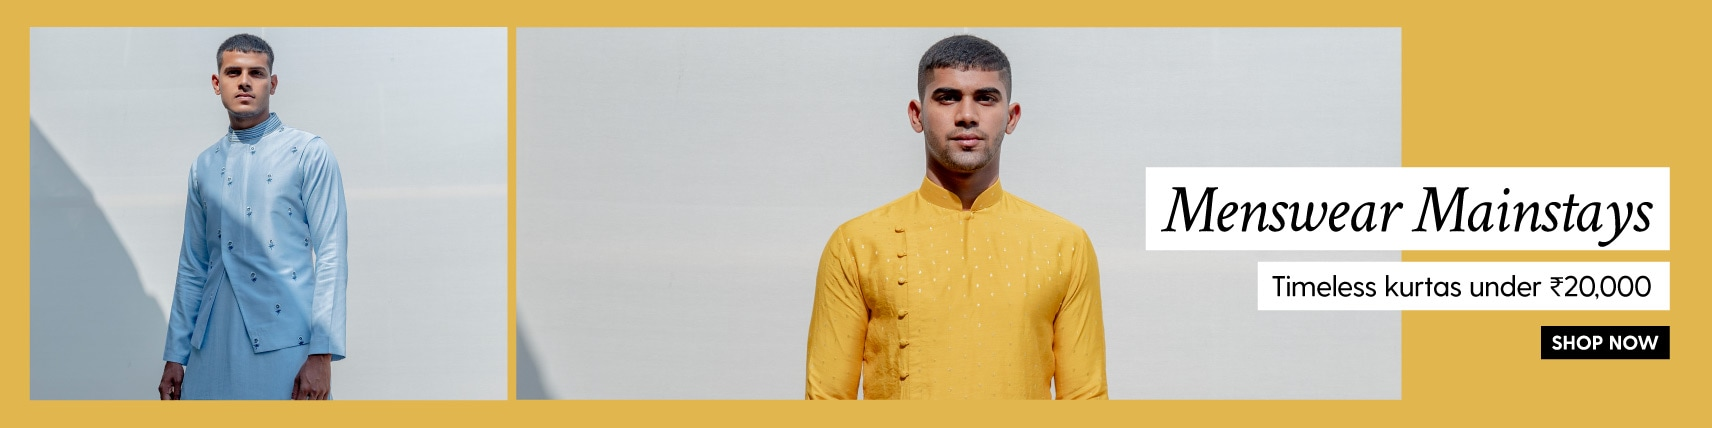 designer-mens-kurtas-under-20000?utm_source=LandingPage&utm_medium=Banner&utm_campaign=Mens-Kurtas-Under20K